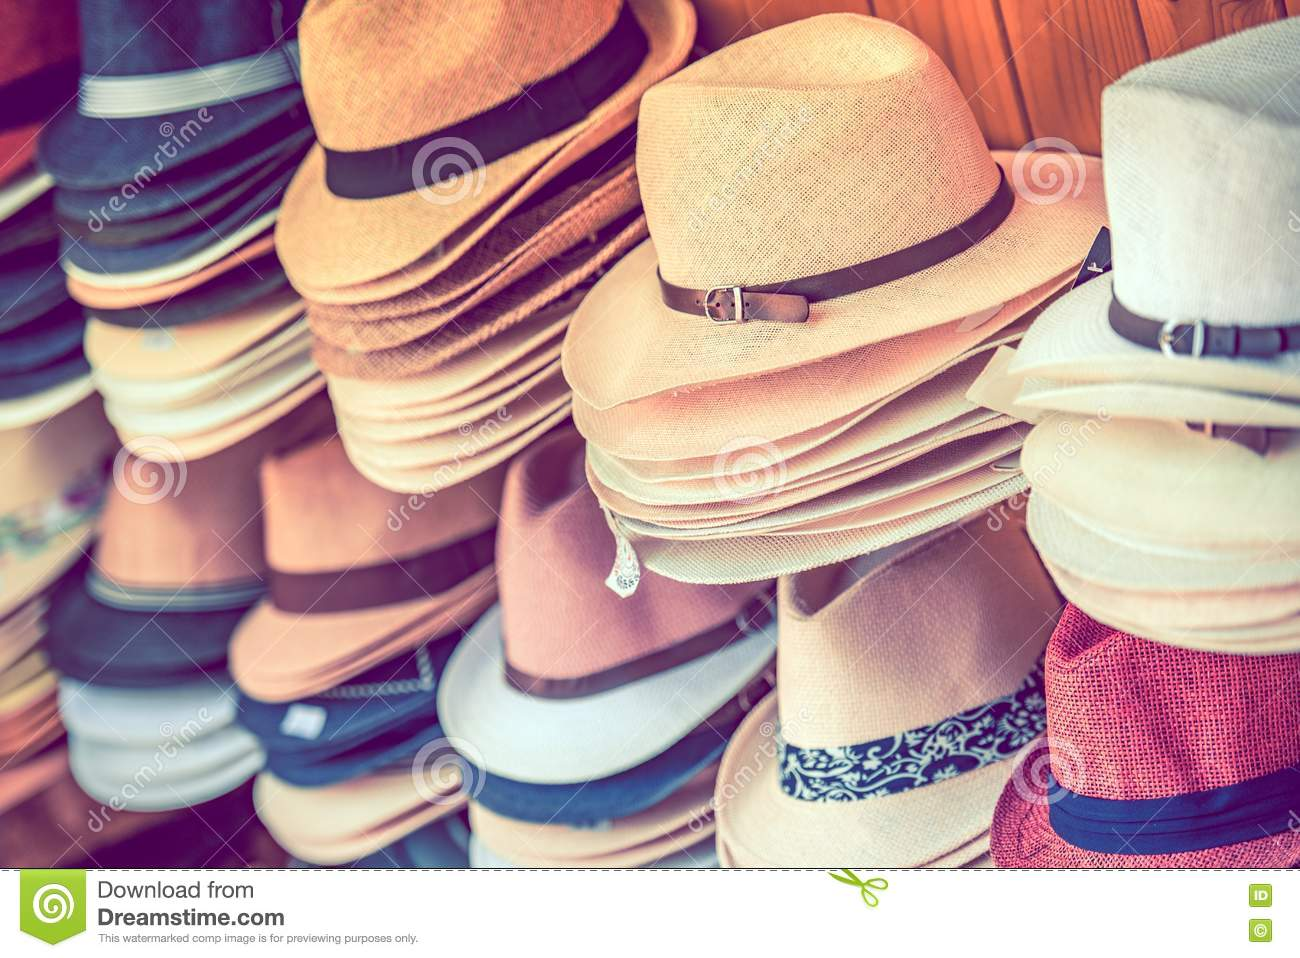 Stylish Summer Hats stock image. Image of fashion dfe6911c0a2